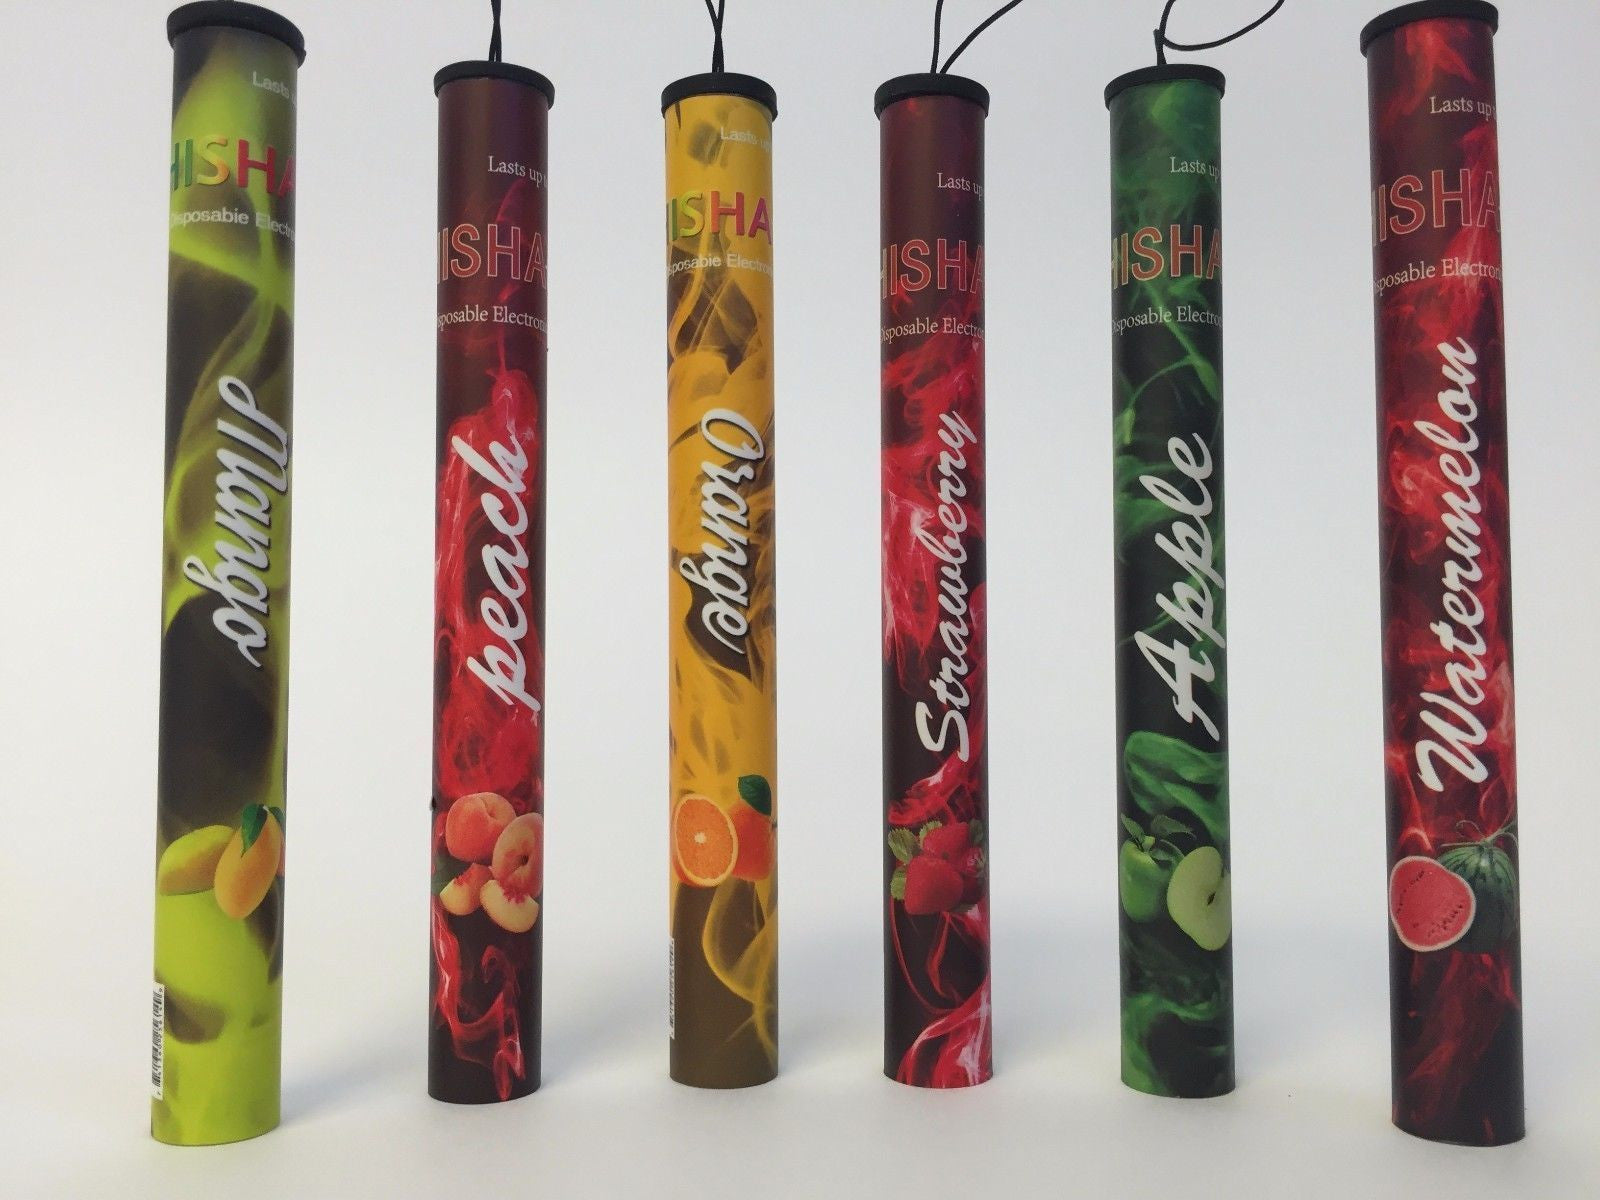 5 HOOKAH PEN DISPOSABLE E-SHISHA Various Flavors